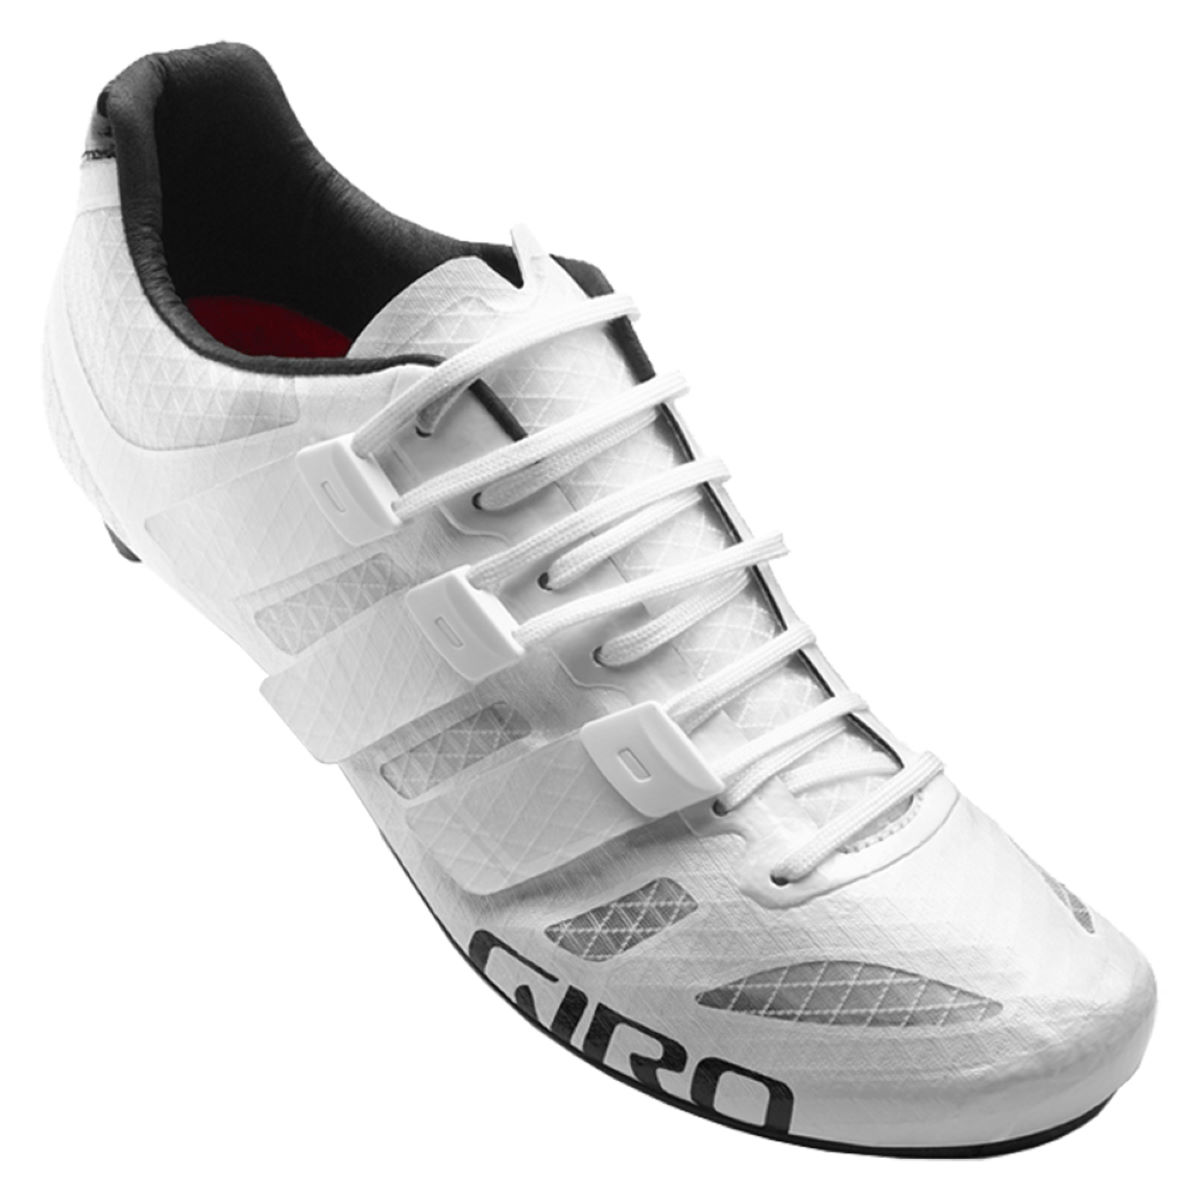 Giro Giro Techlace Prolight Road Shoe   Cycling Shoes